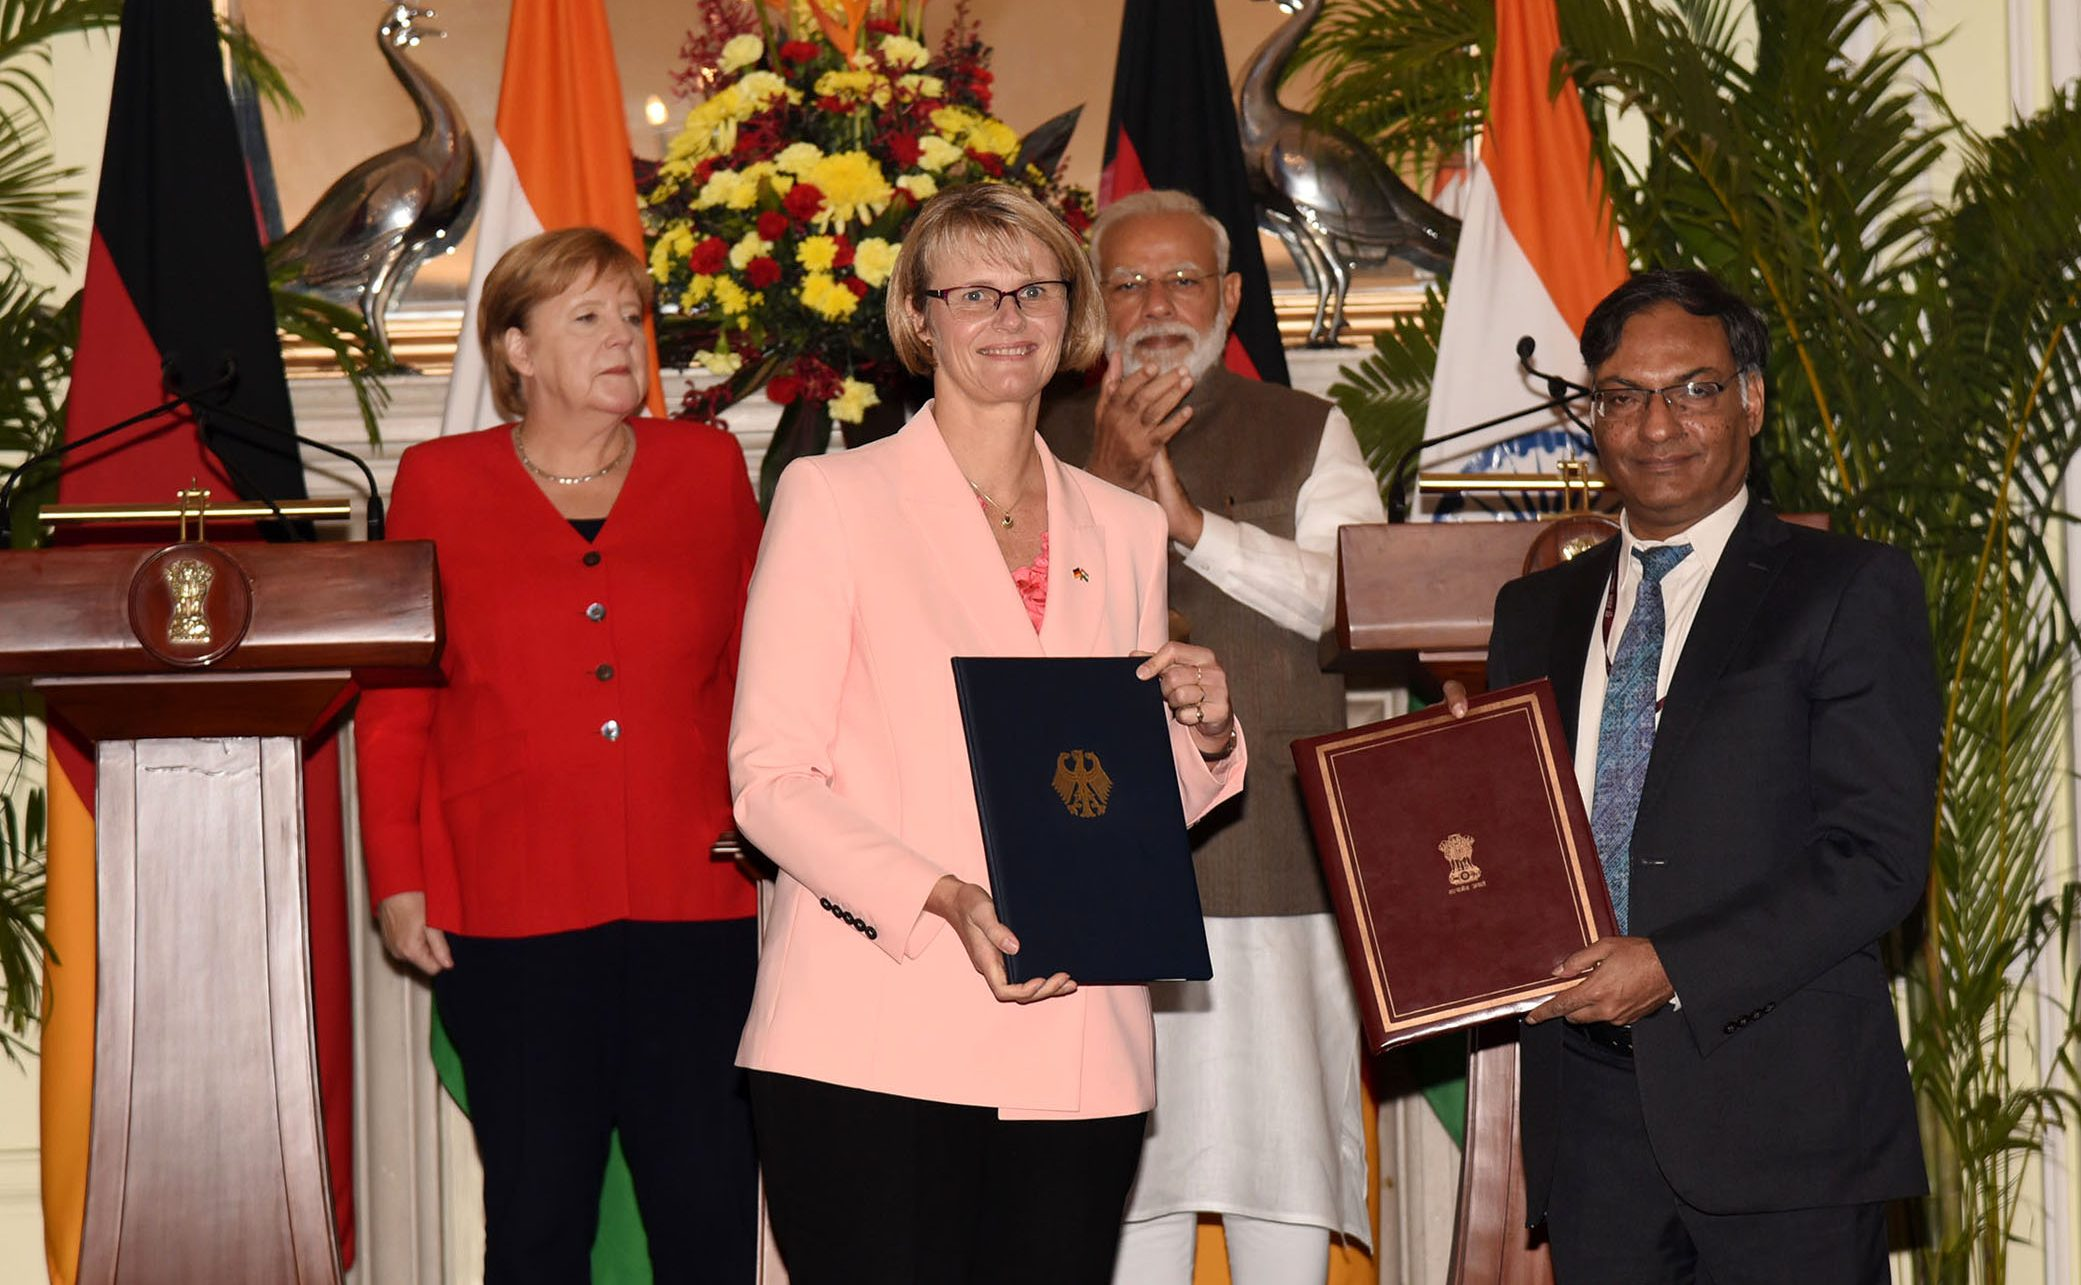 List of MoUs/Agreements signed during the visit of Chancellor of Germany to India